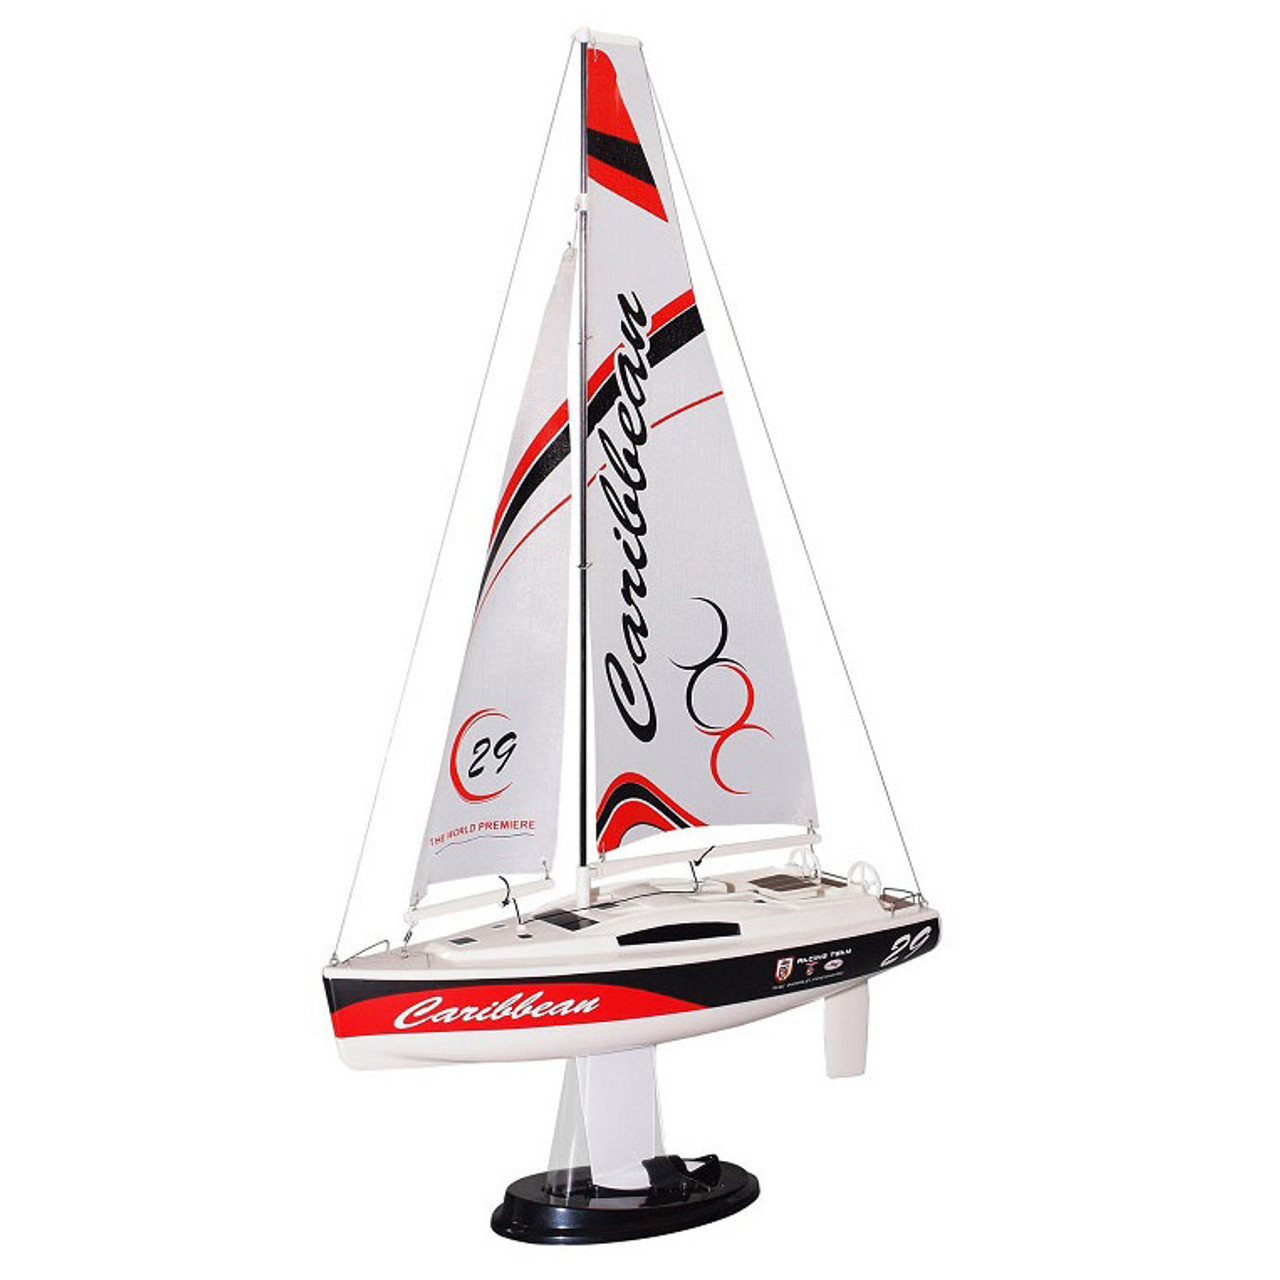 Joysway Caribbean 2.4Ghz RC Sailboat Yacht - Ready to Run!!! RTR